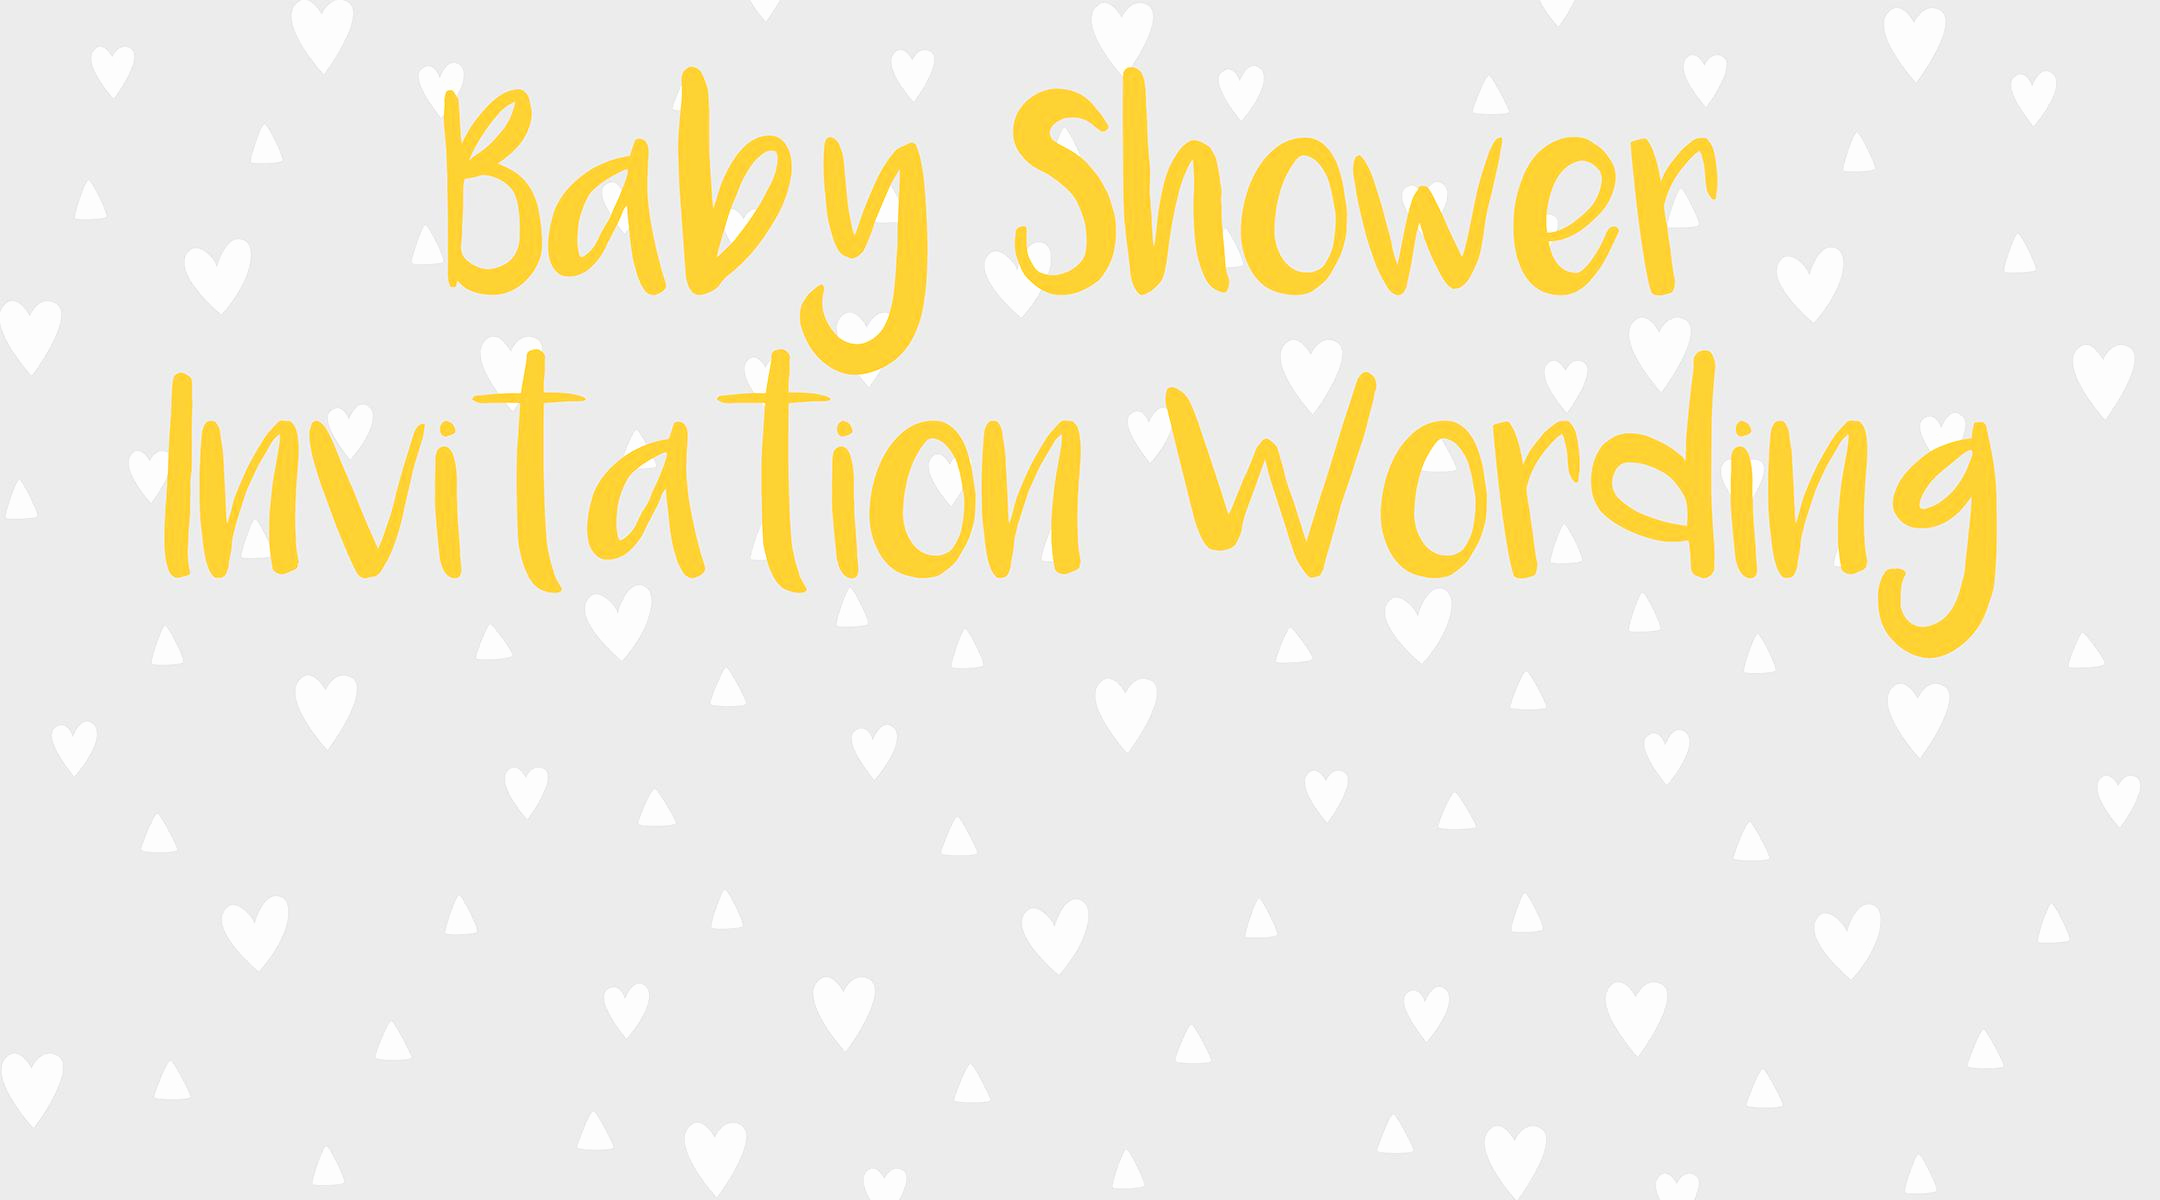 Diaper Shower Invitation Wording New 22 Baby Shower Invitation Wording Ideas